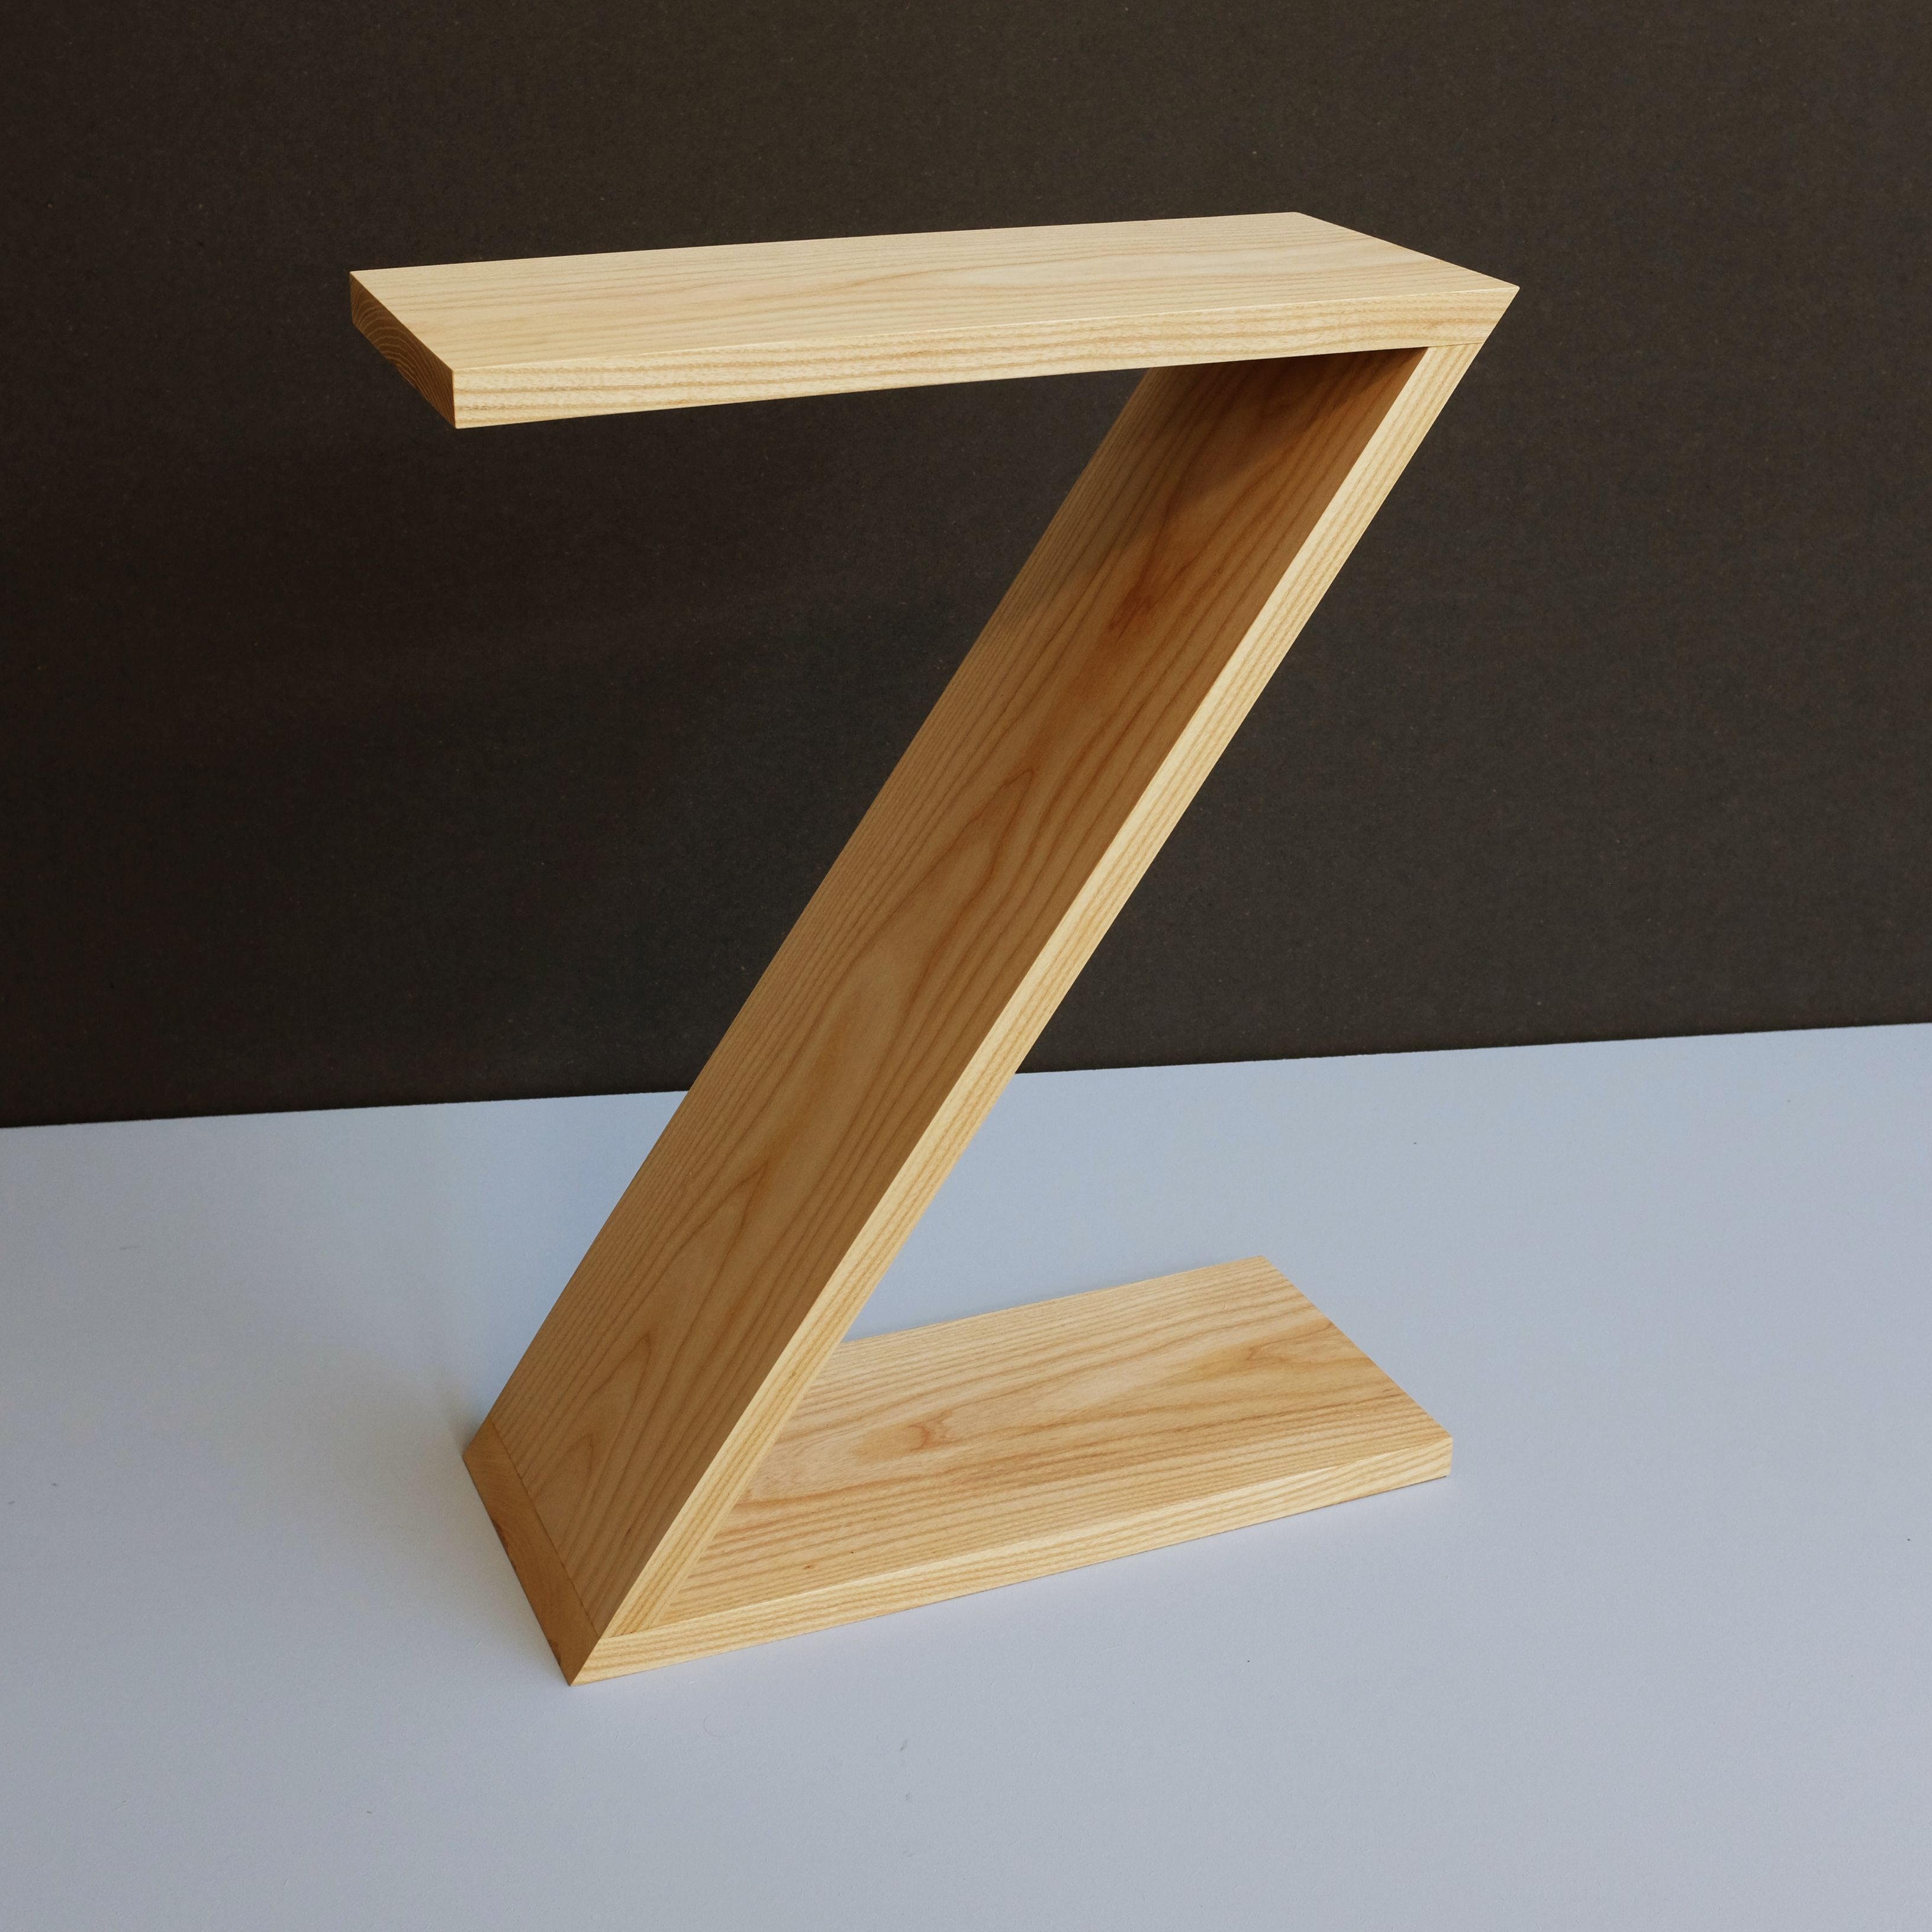 Zedside table a funky bedside table in solid ash make a statement zedside table a funky bedside table in solid ash make a statement in the watchthetrailerfo